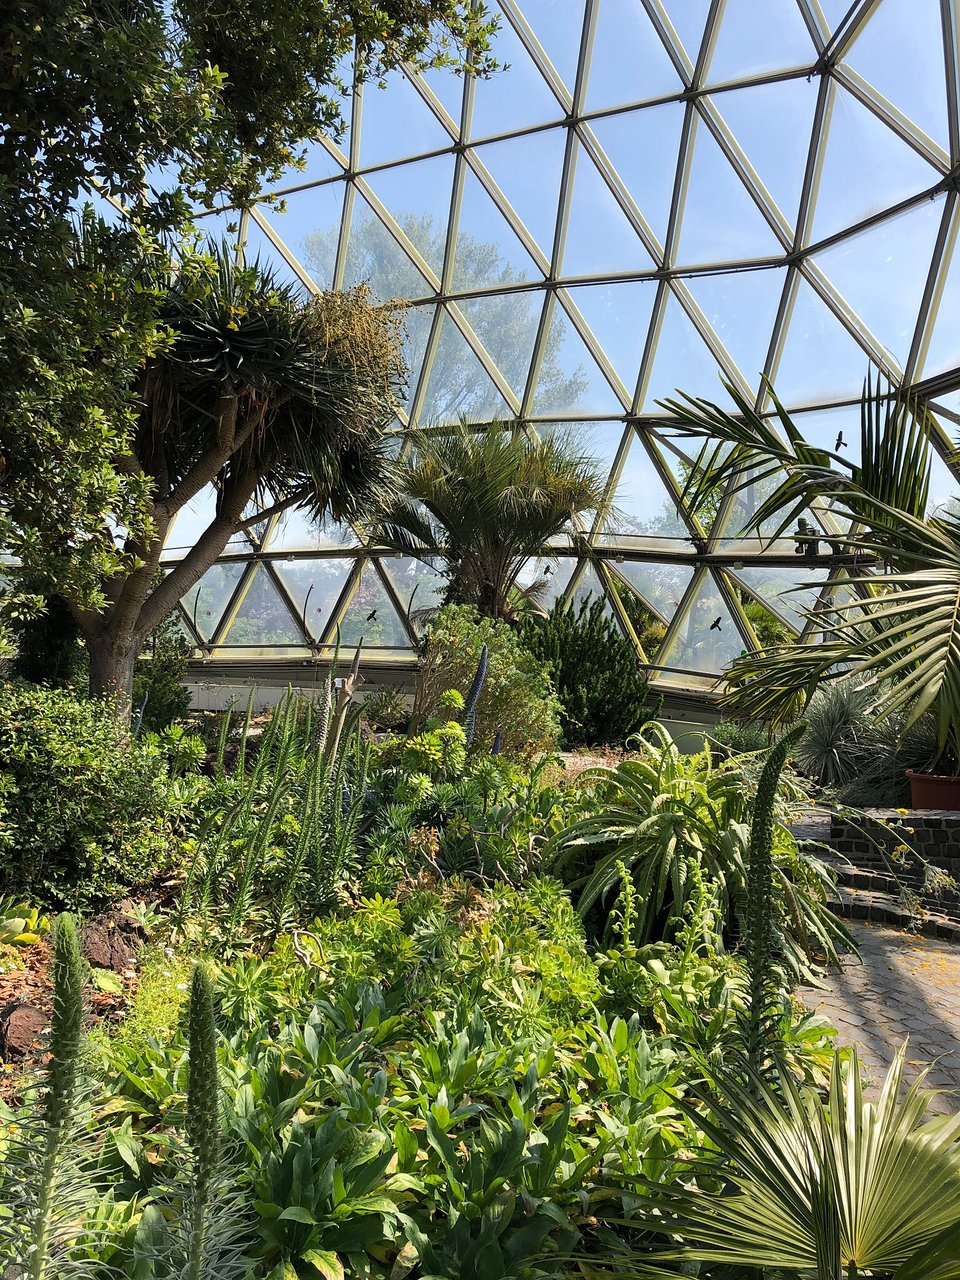 China Garten Genial Botanical Garden Dusseldorf 2020 All You Need to Know